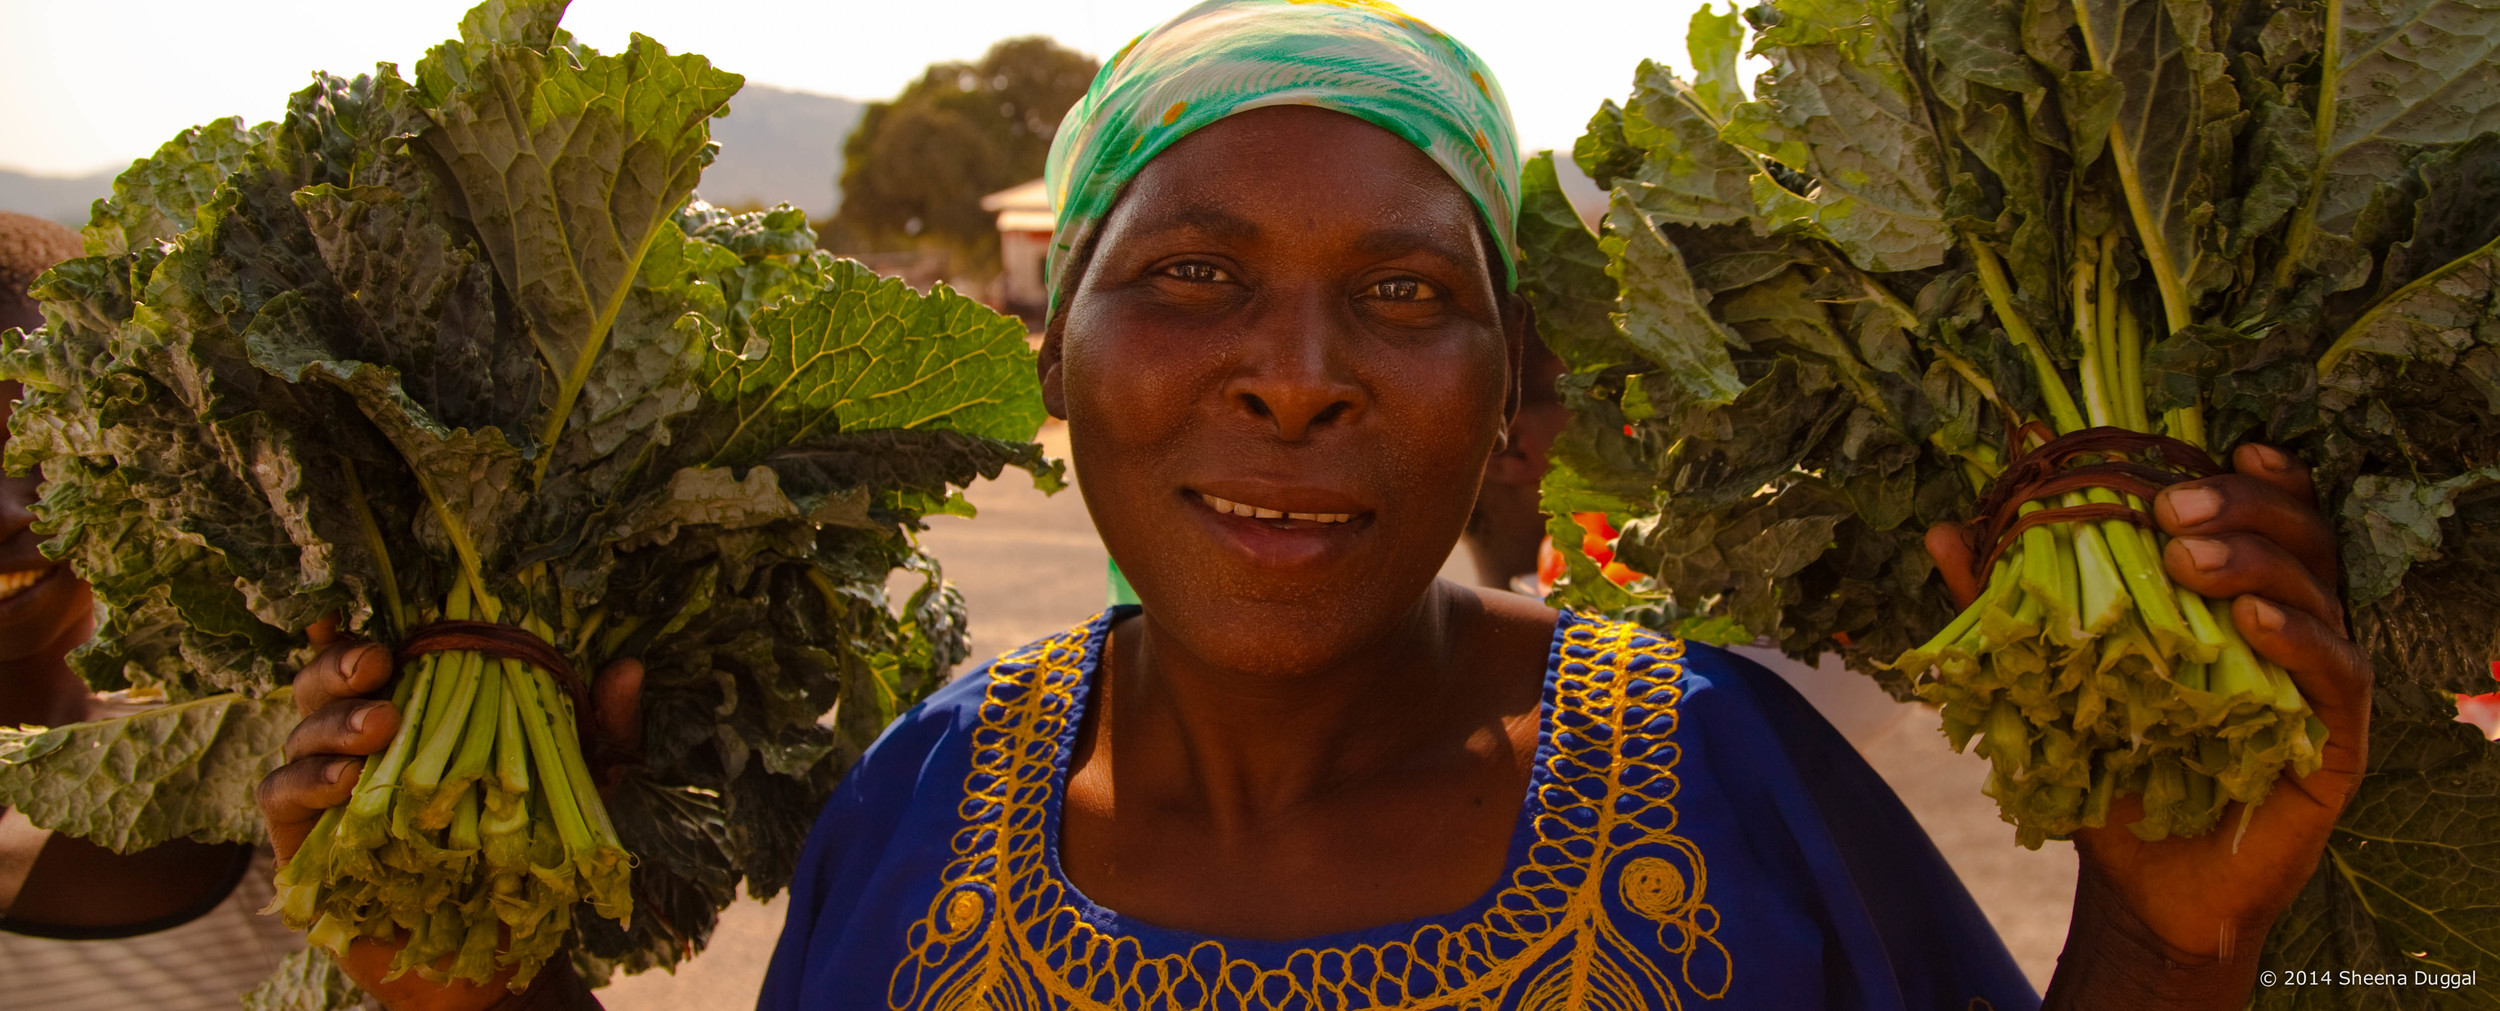 Lady selling kale she has grown, Zimbabwe